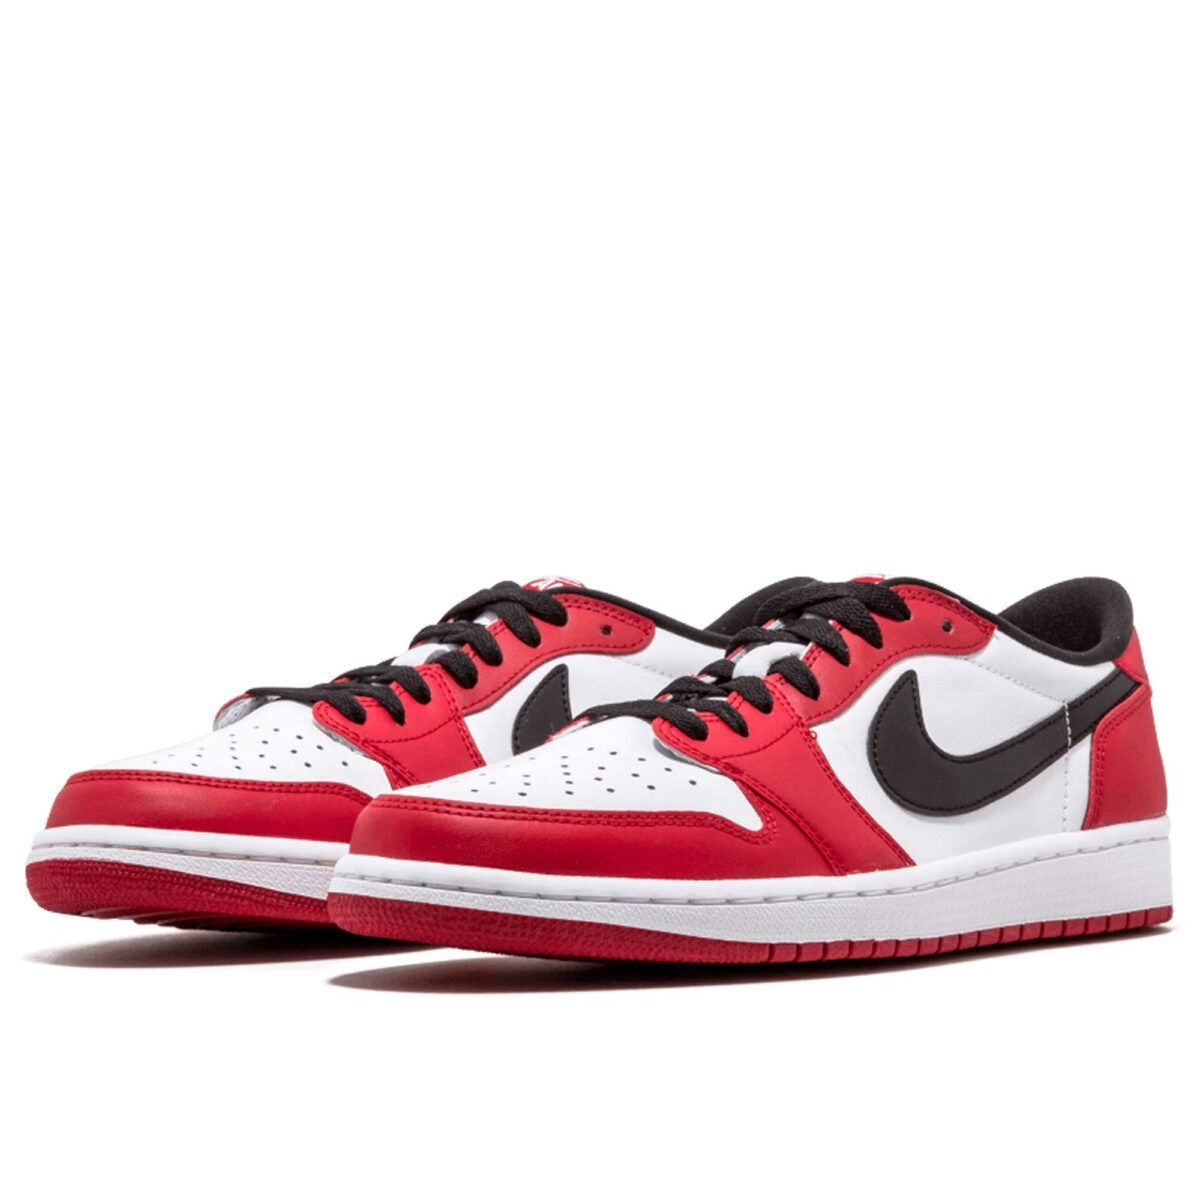 nike air Jordan retro 1 low og chicago 705329_600 купить